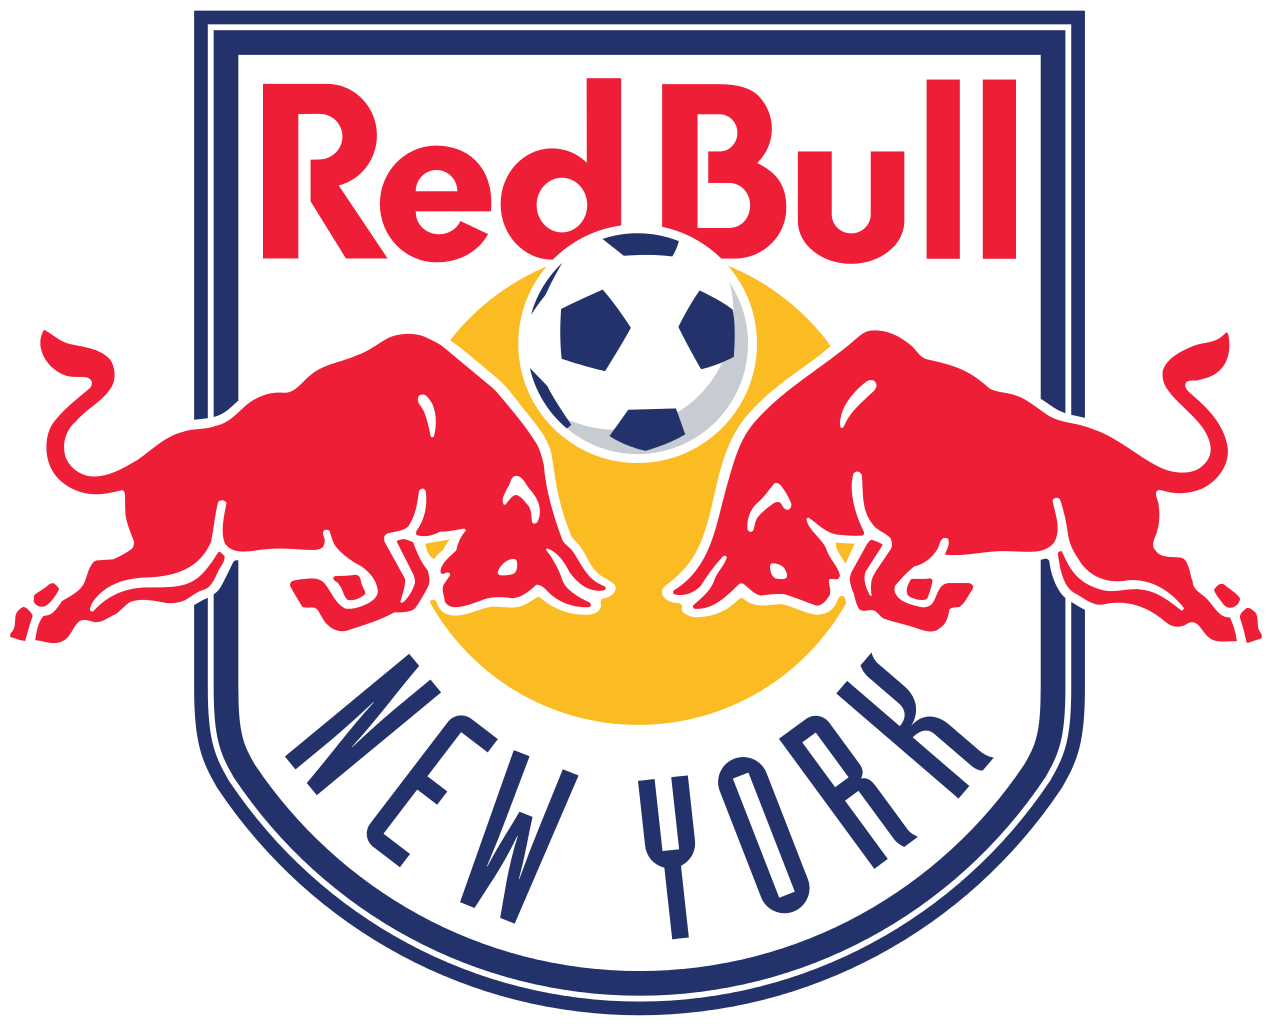 New York Red Bulls Logo Wallpaper